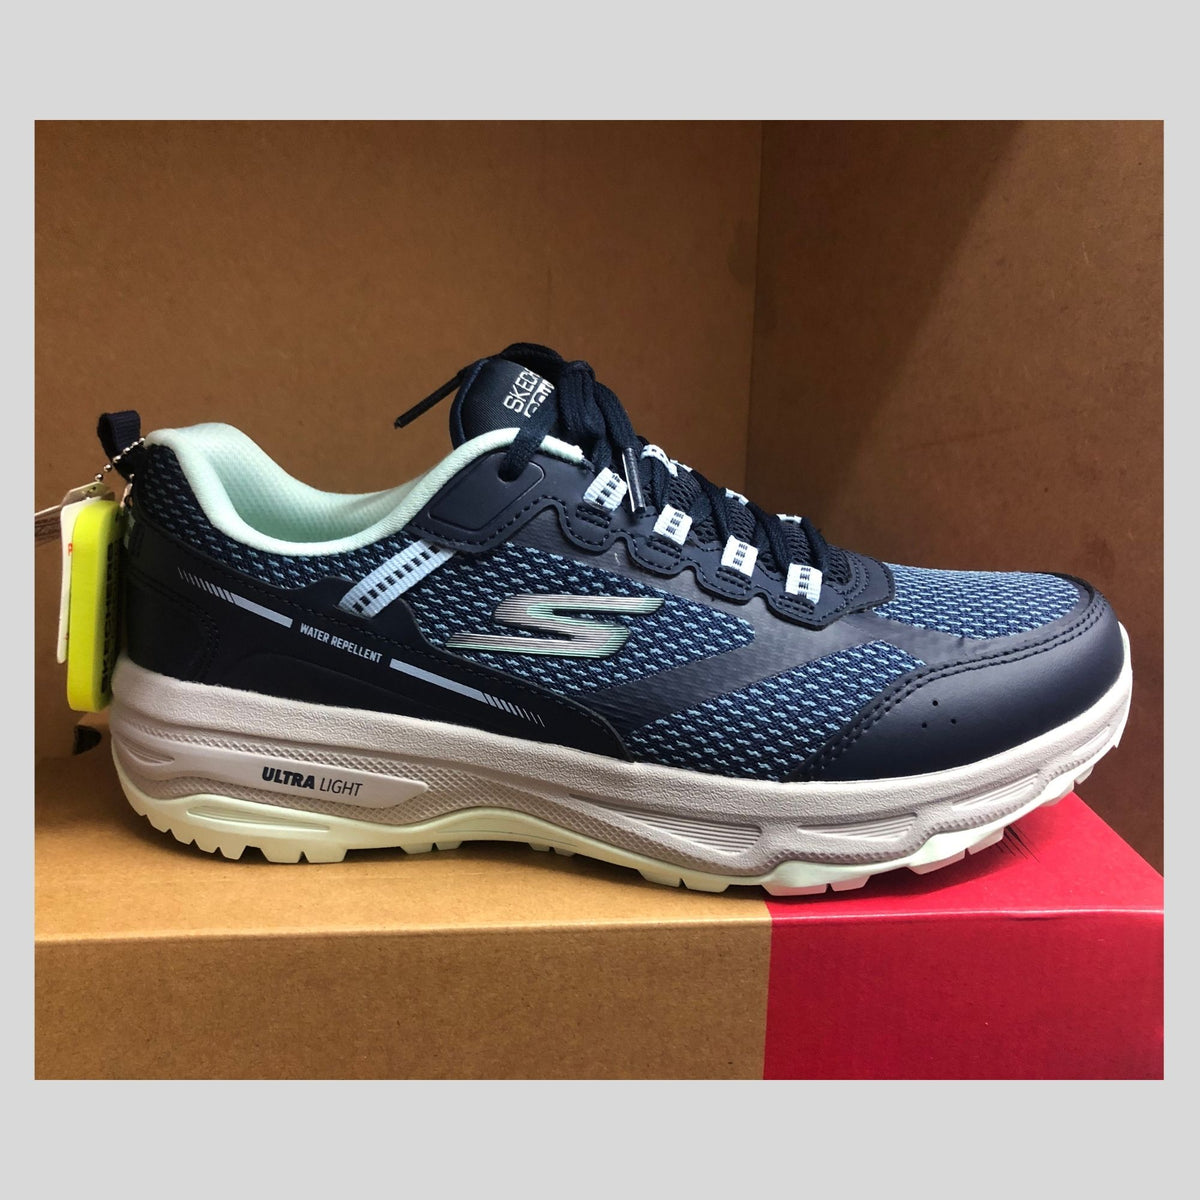 Skechers 128200 NVTQ - Go Run Trail Altitude